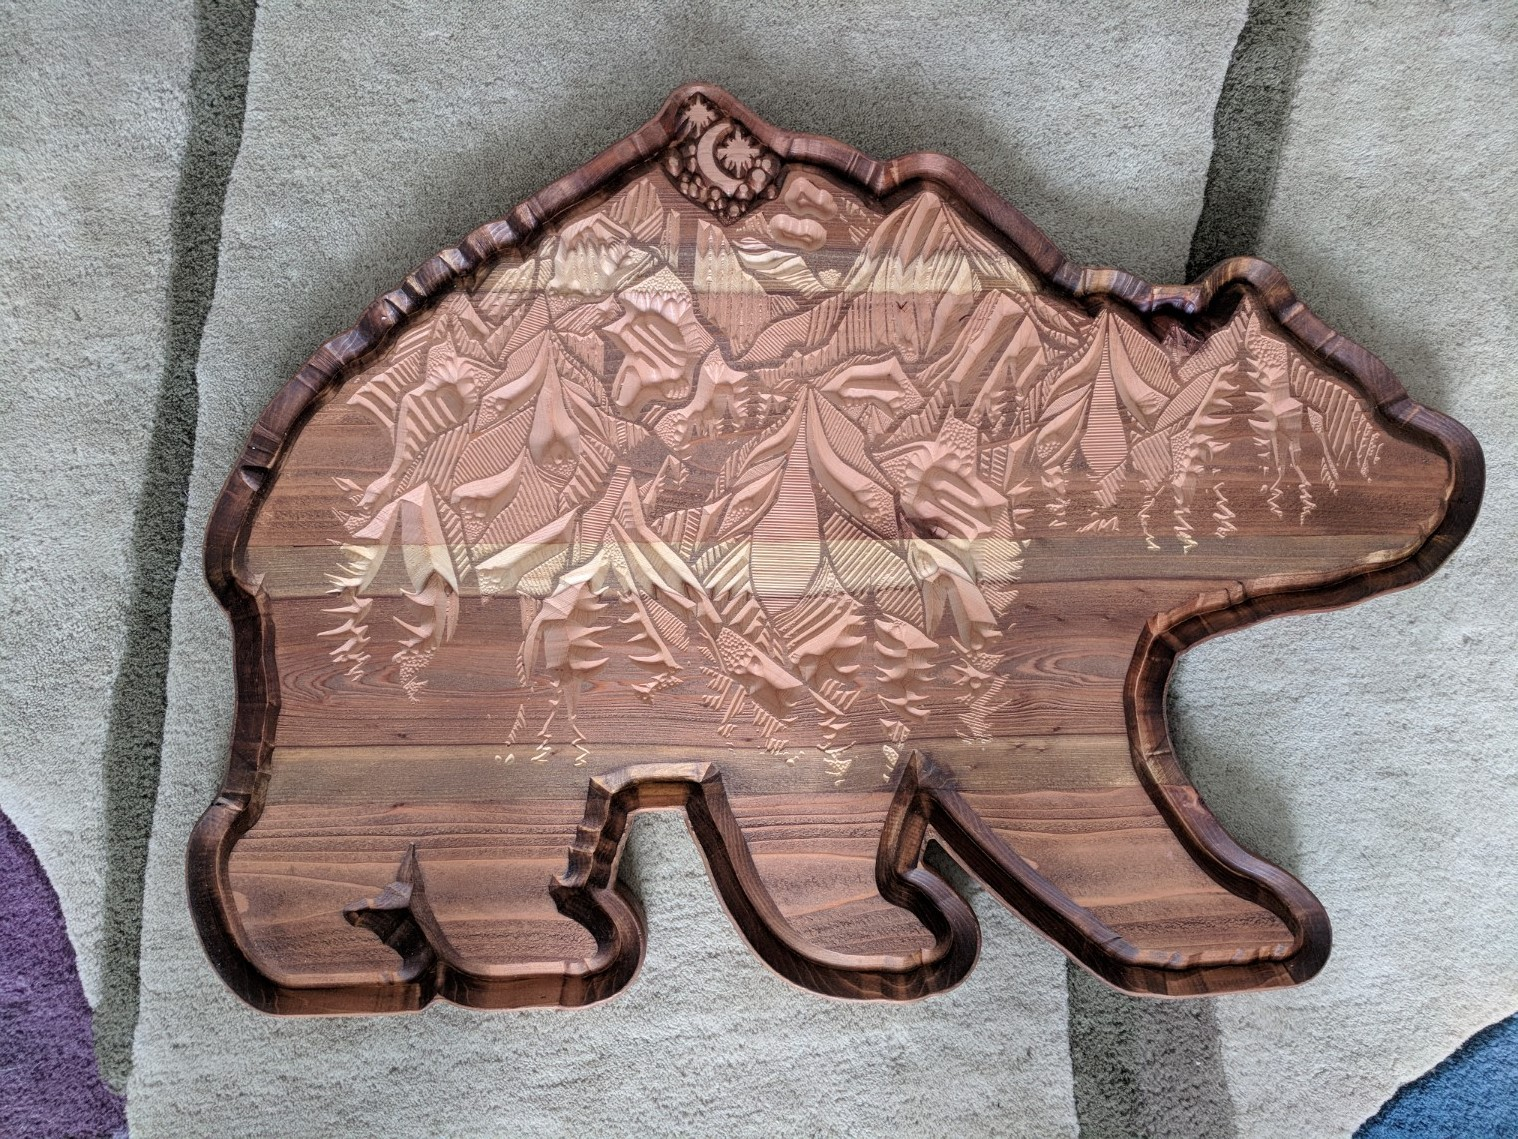 Wood Cnc Projects That Sell